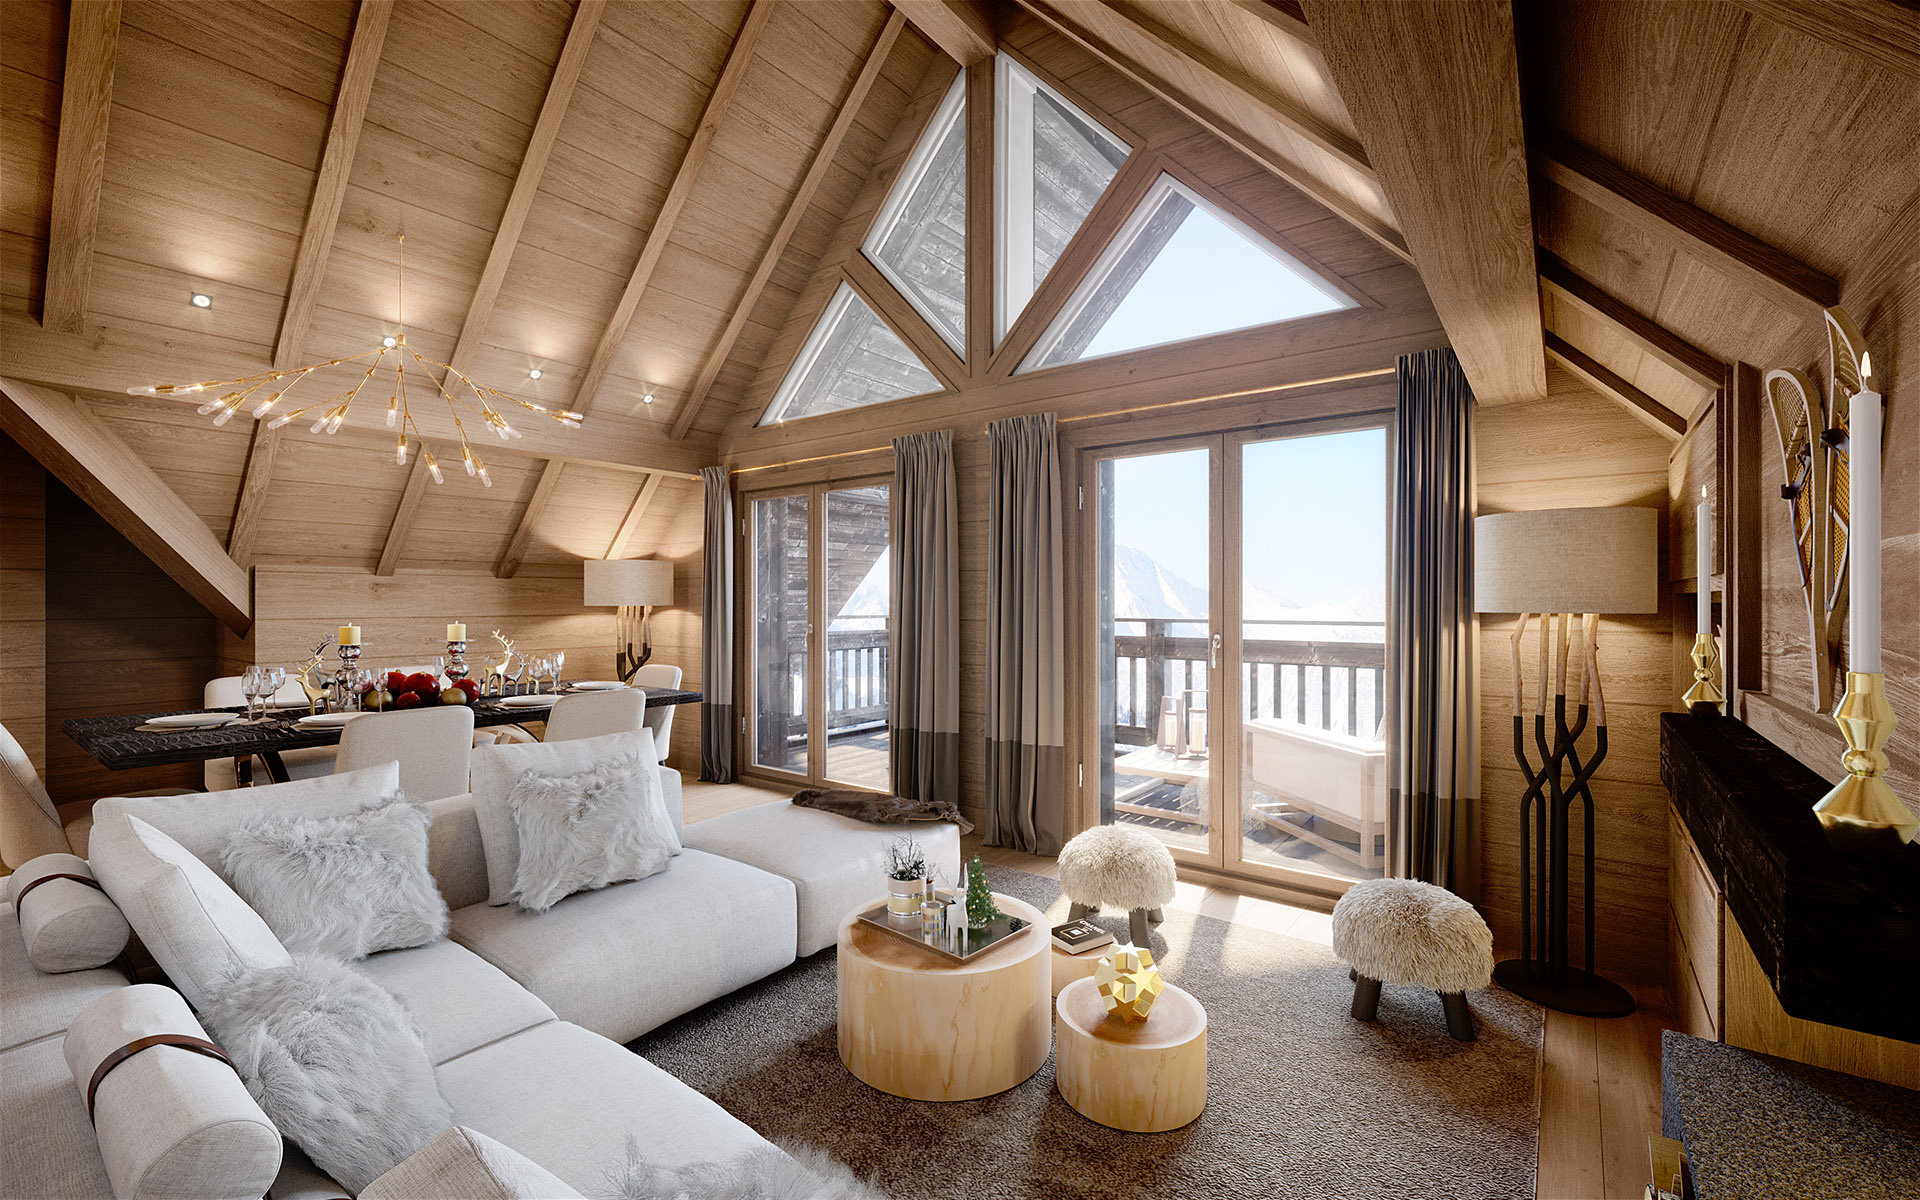 3D graphics of a living room in a rustic and luxurious cottage